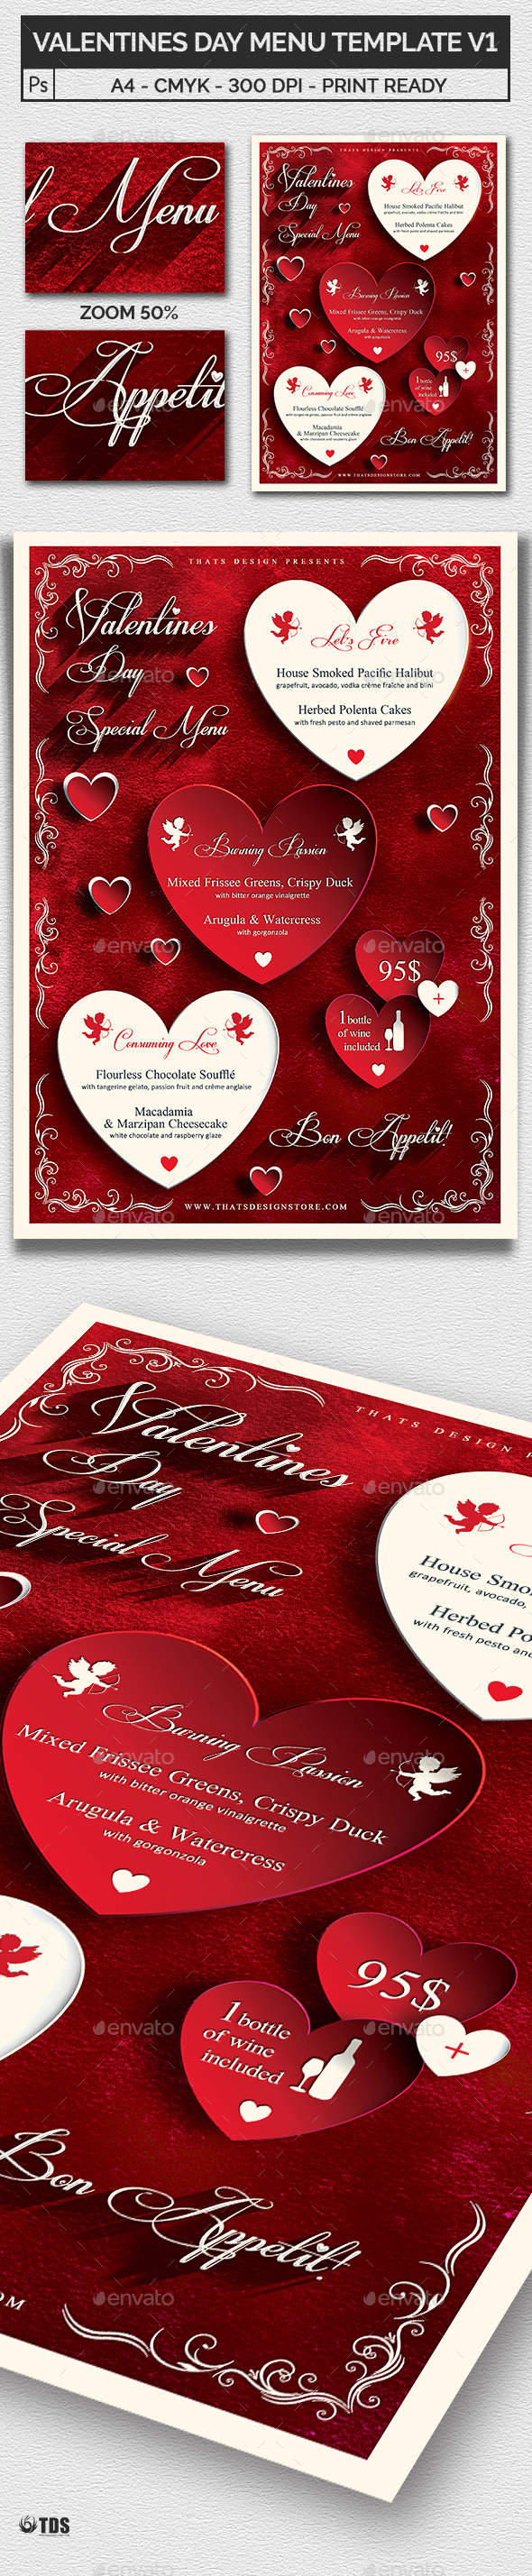 Valentines Day Menu Template V1 - Holidays Events